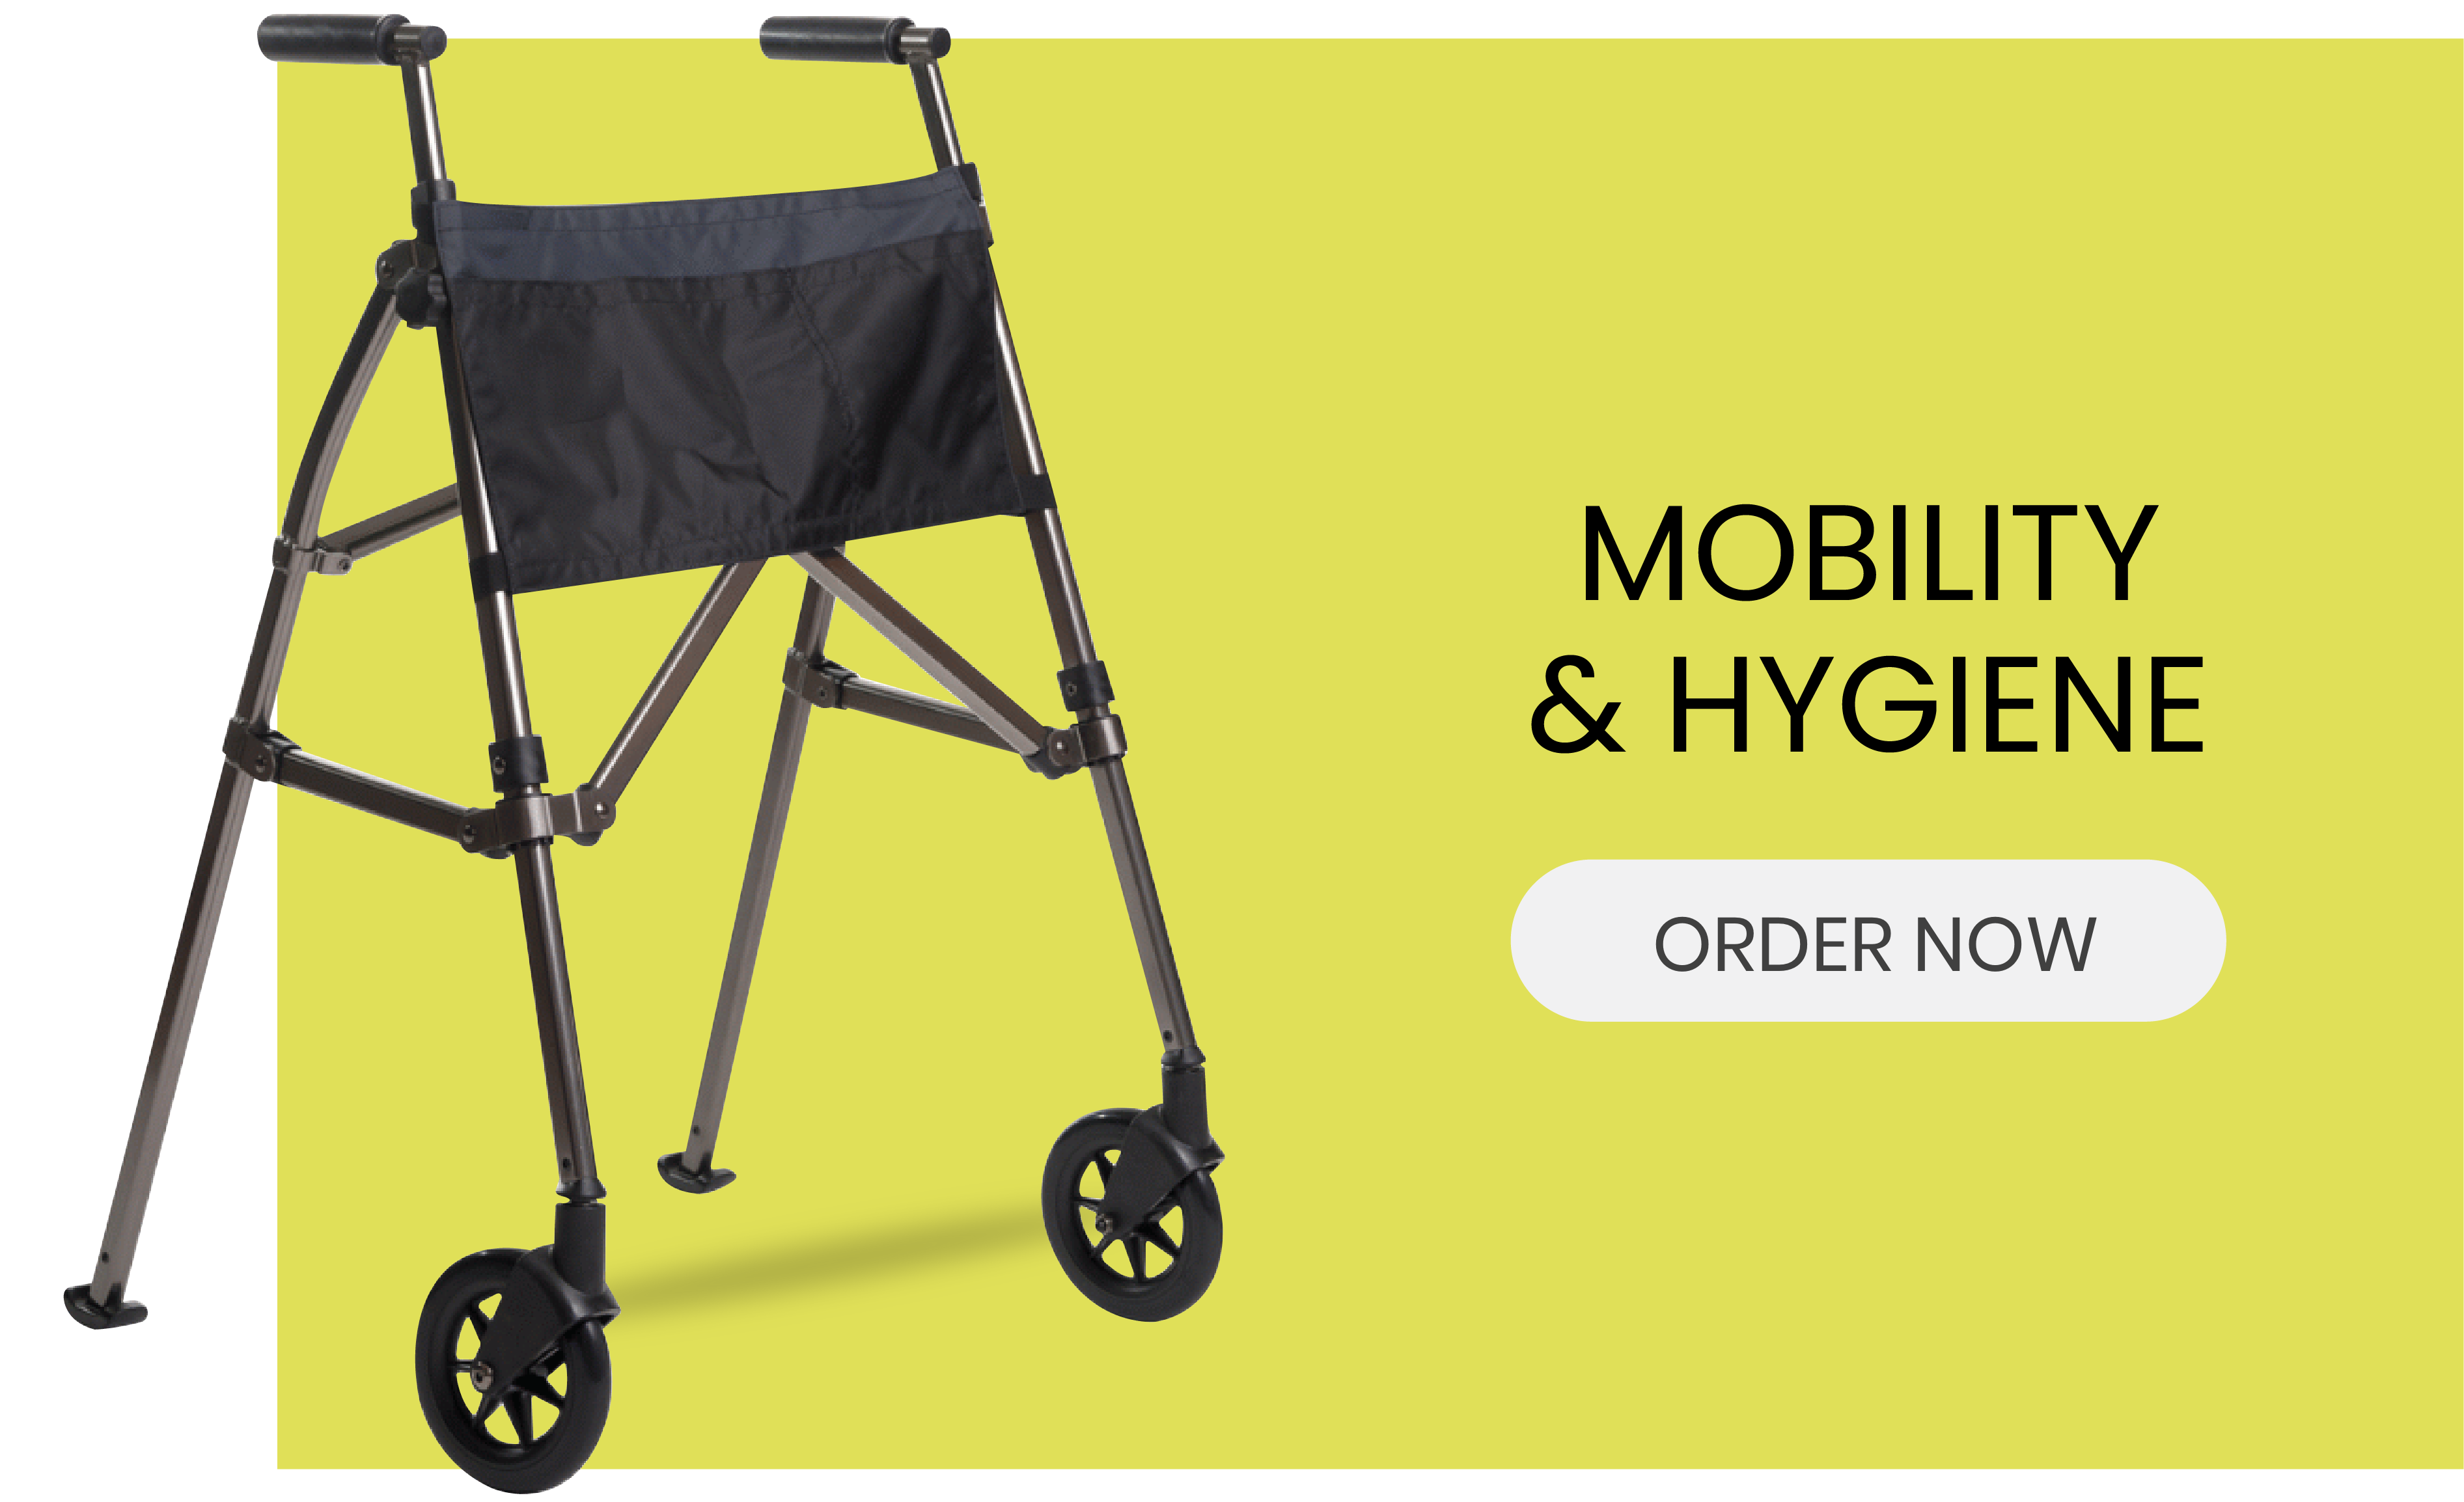 Mobility and Hygiene